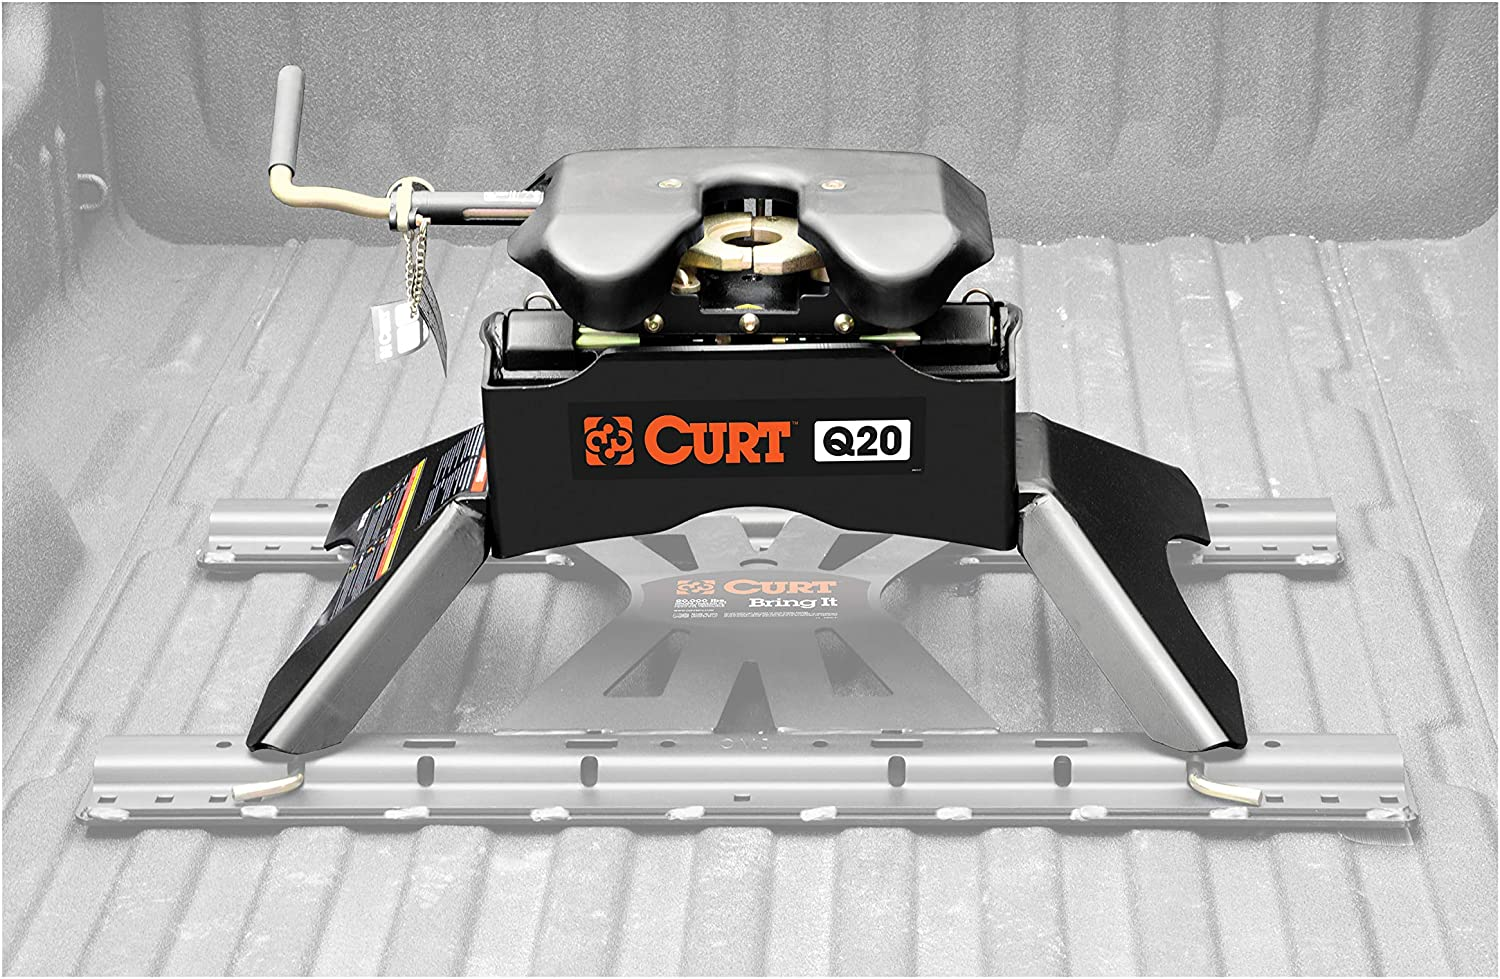 20,000 lbs CURT 16130 Black Q20 5th Wheel Hitch